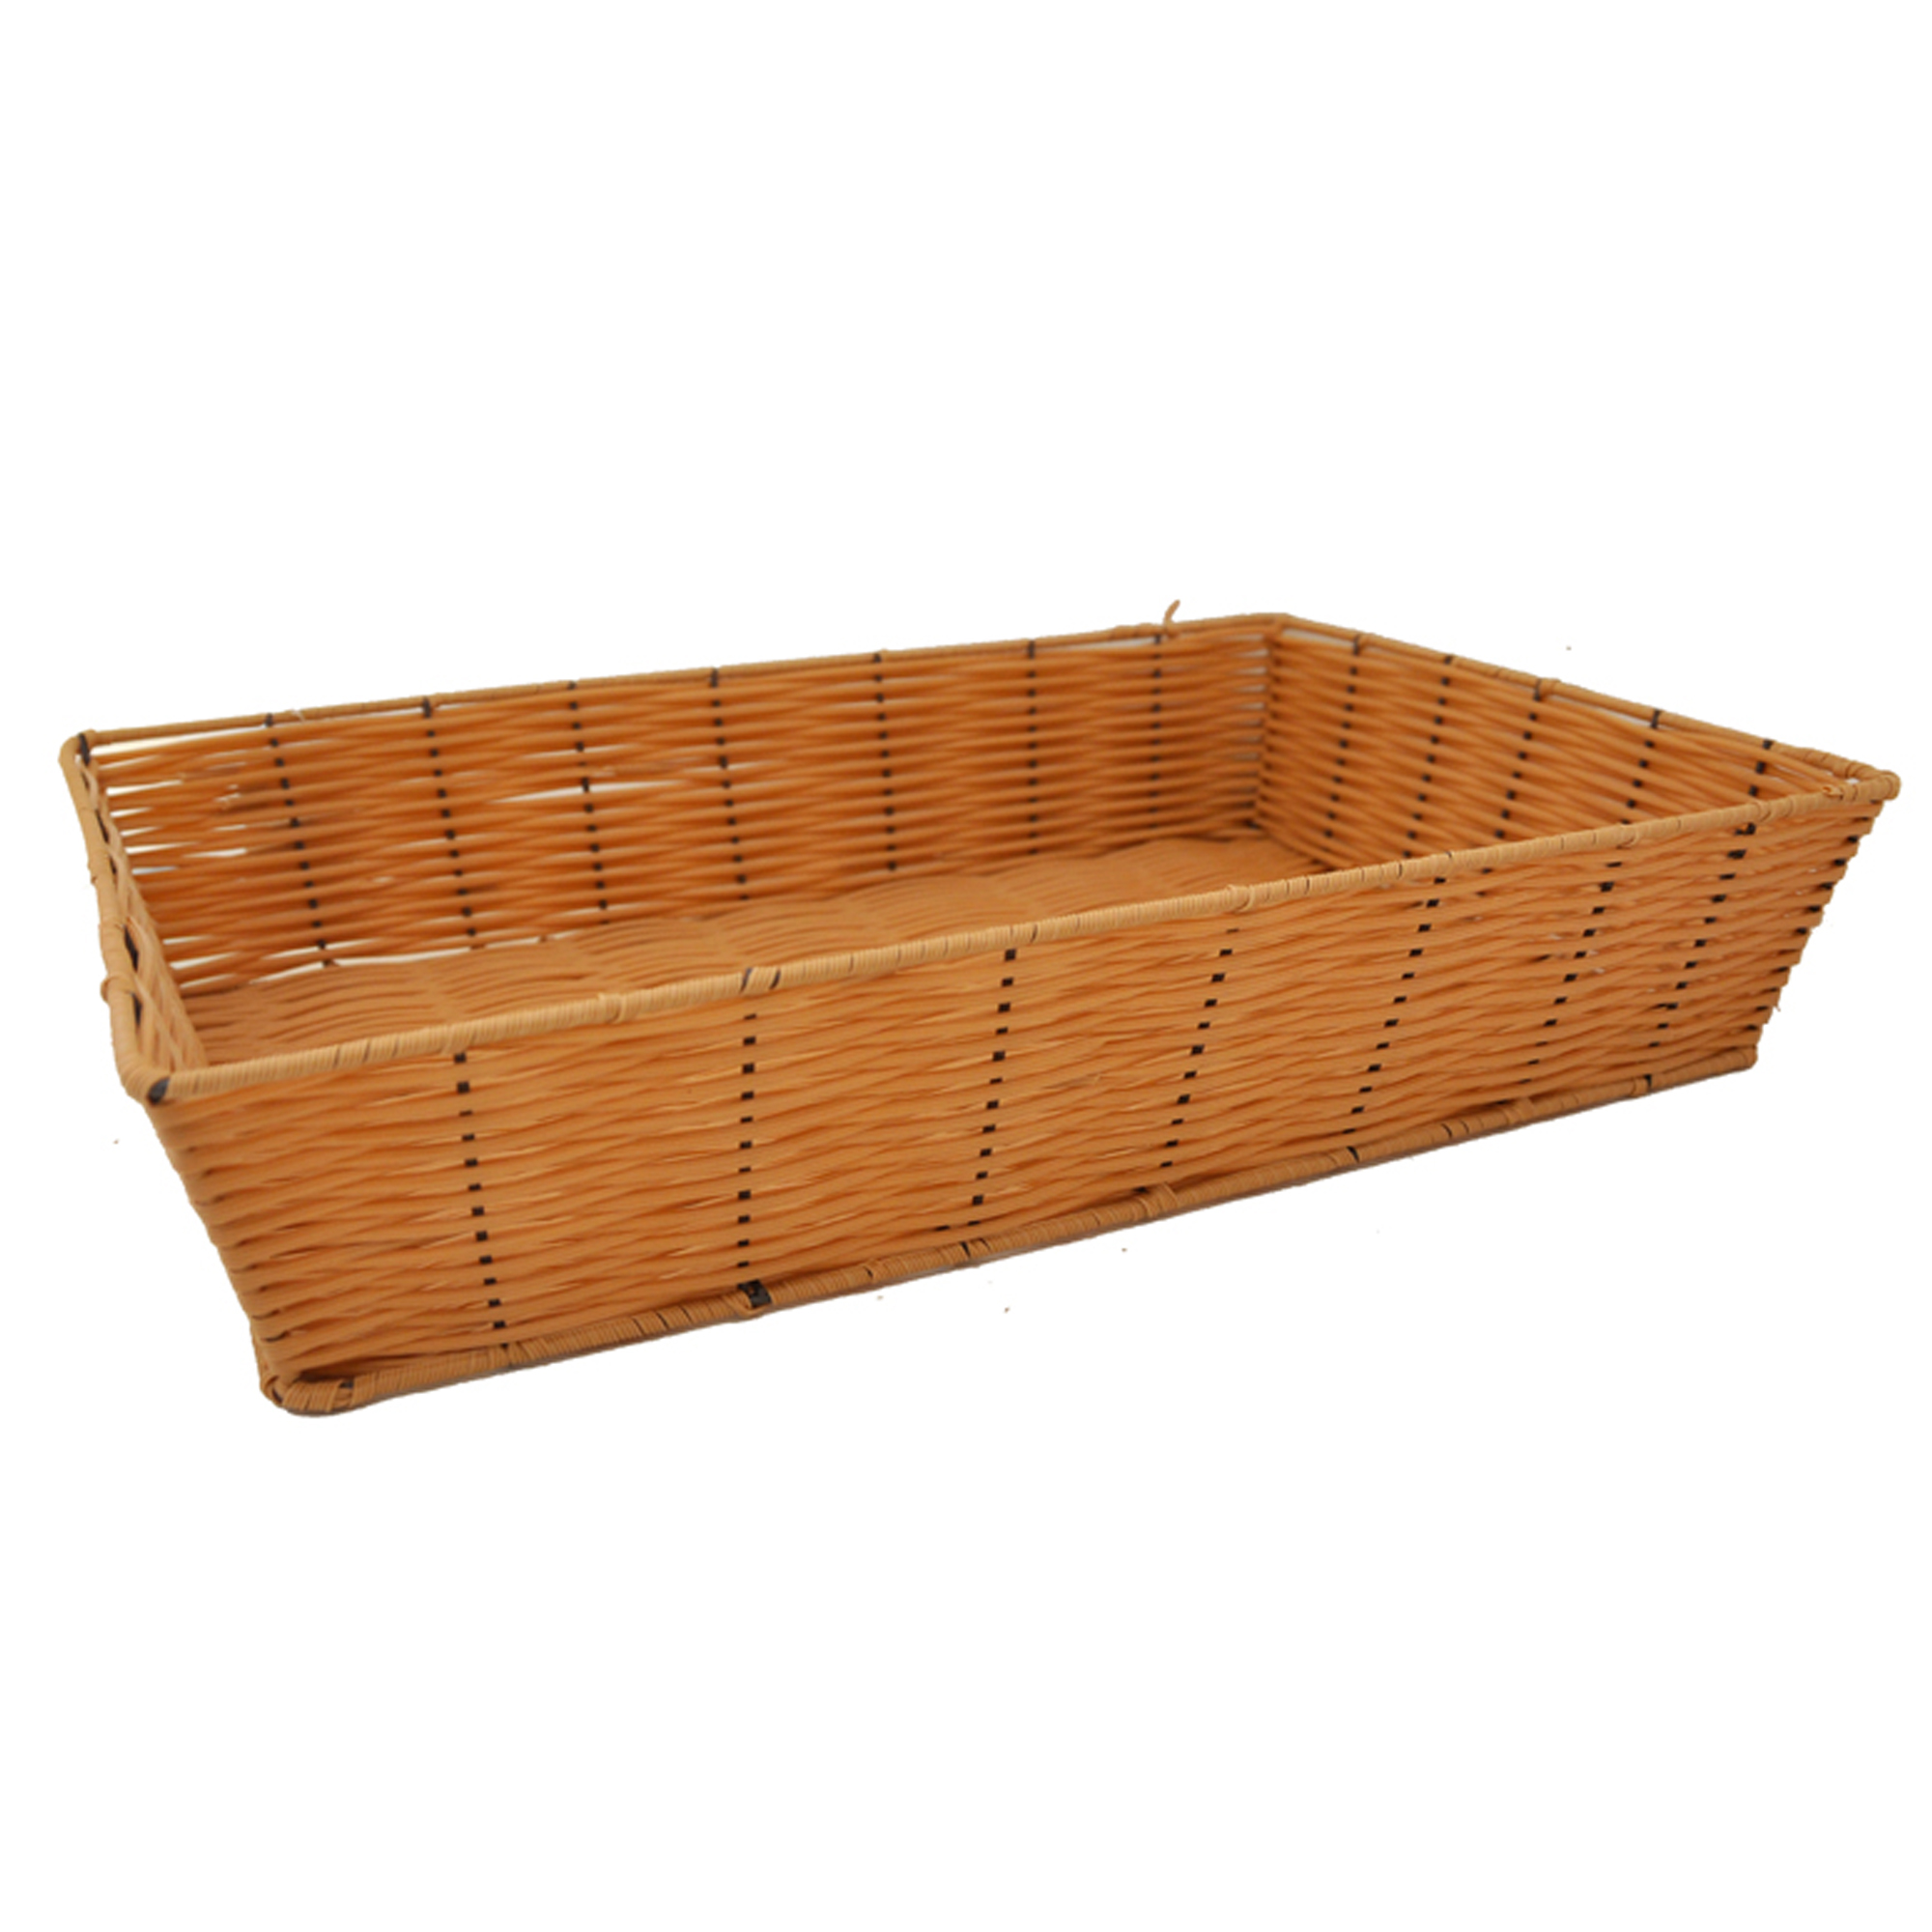 Rectangular Synthetic Wicker Tray - Large 17in